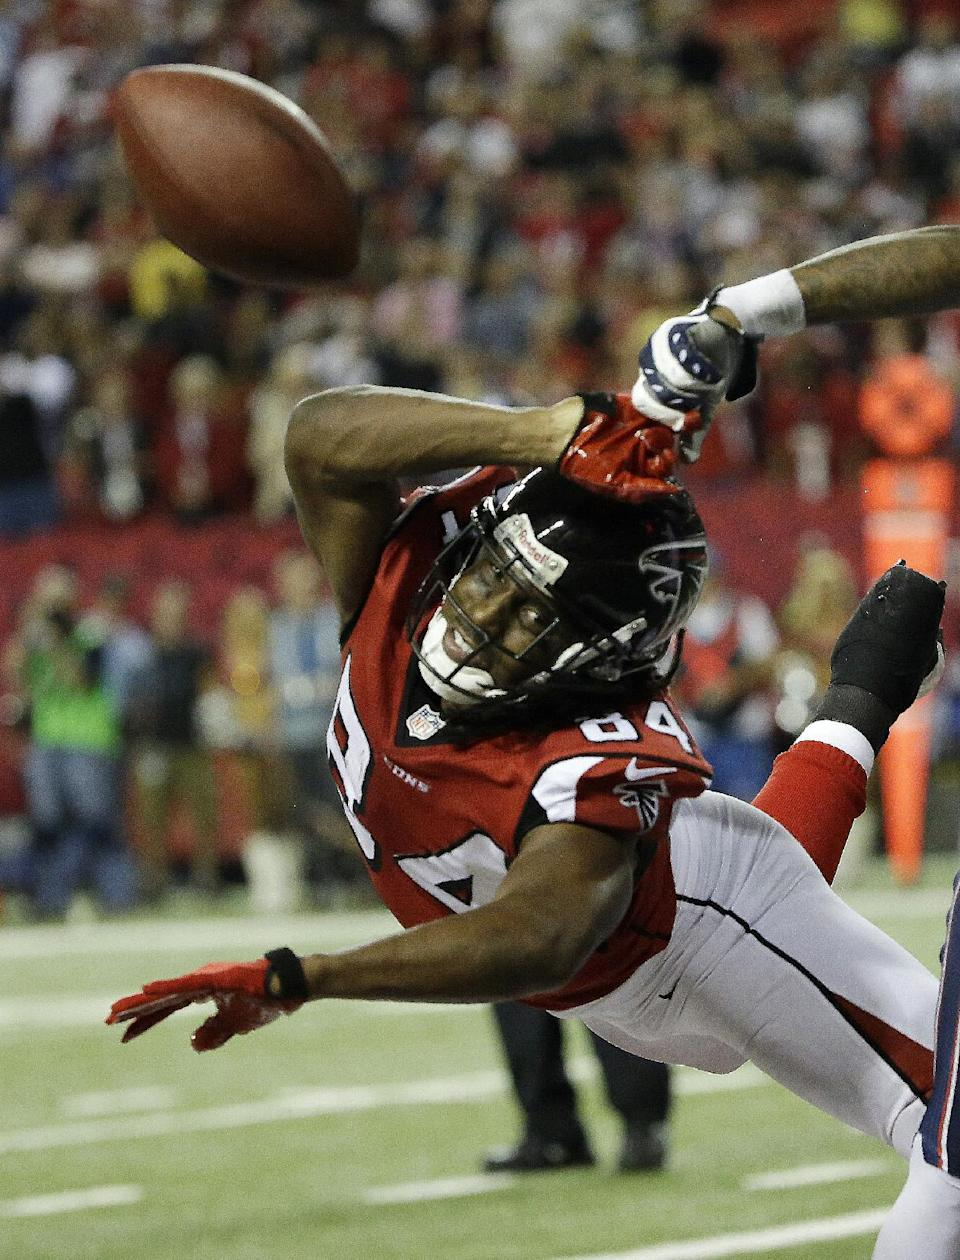 WR Roddy White to miss game for 1st time in career